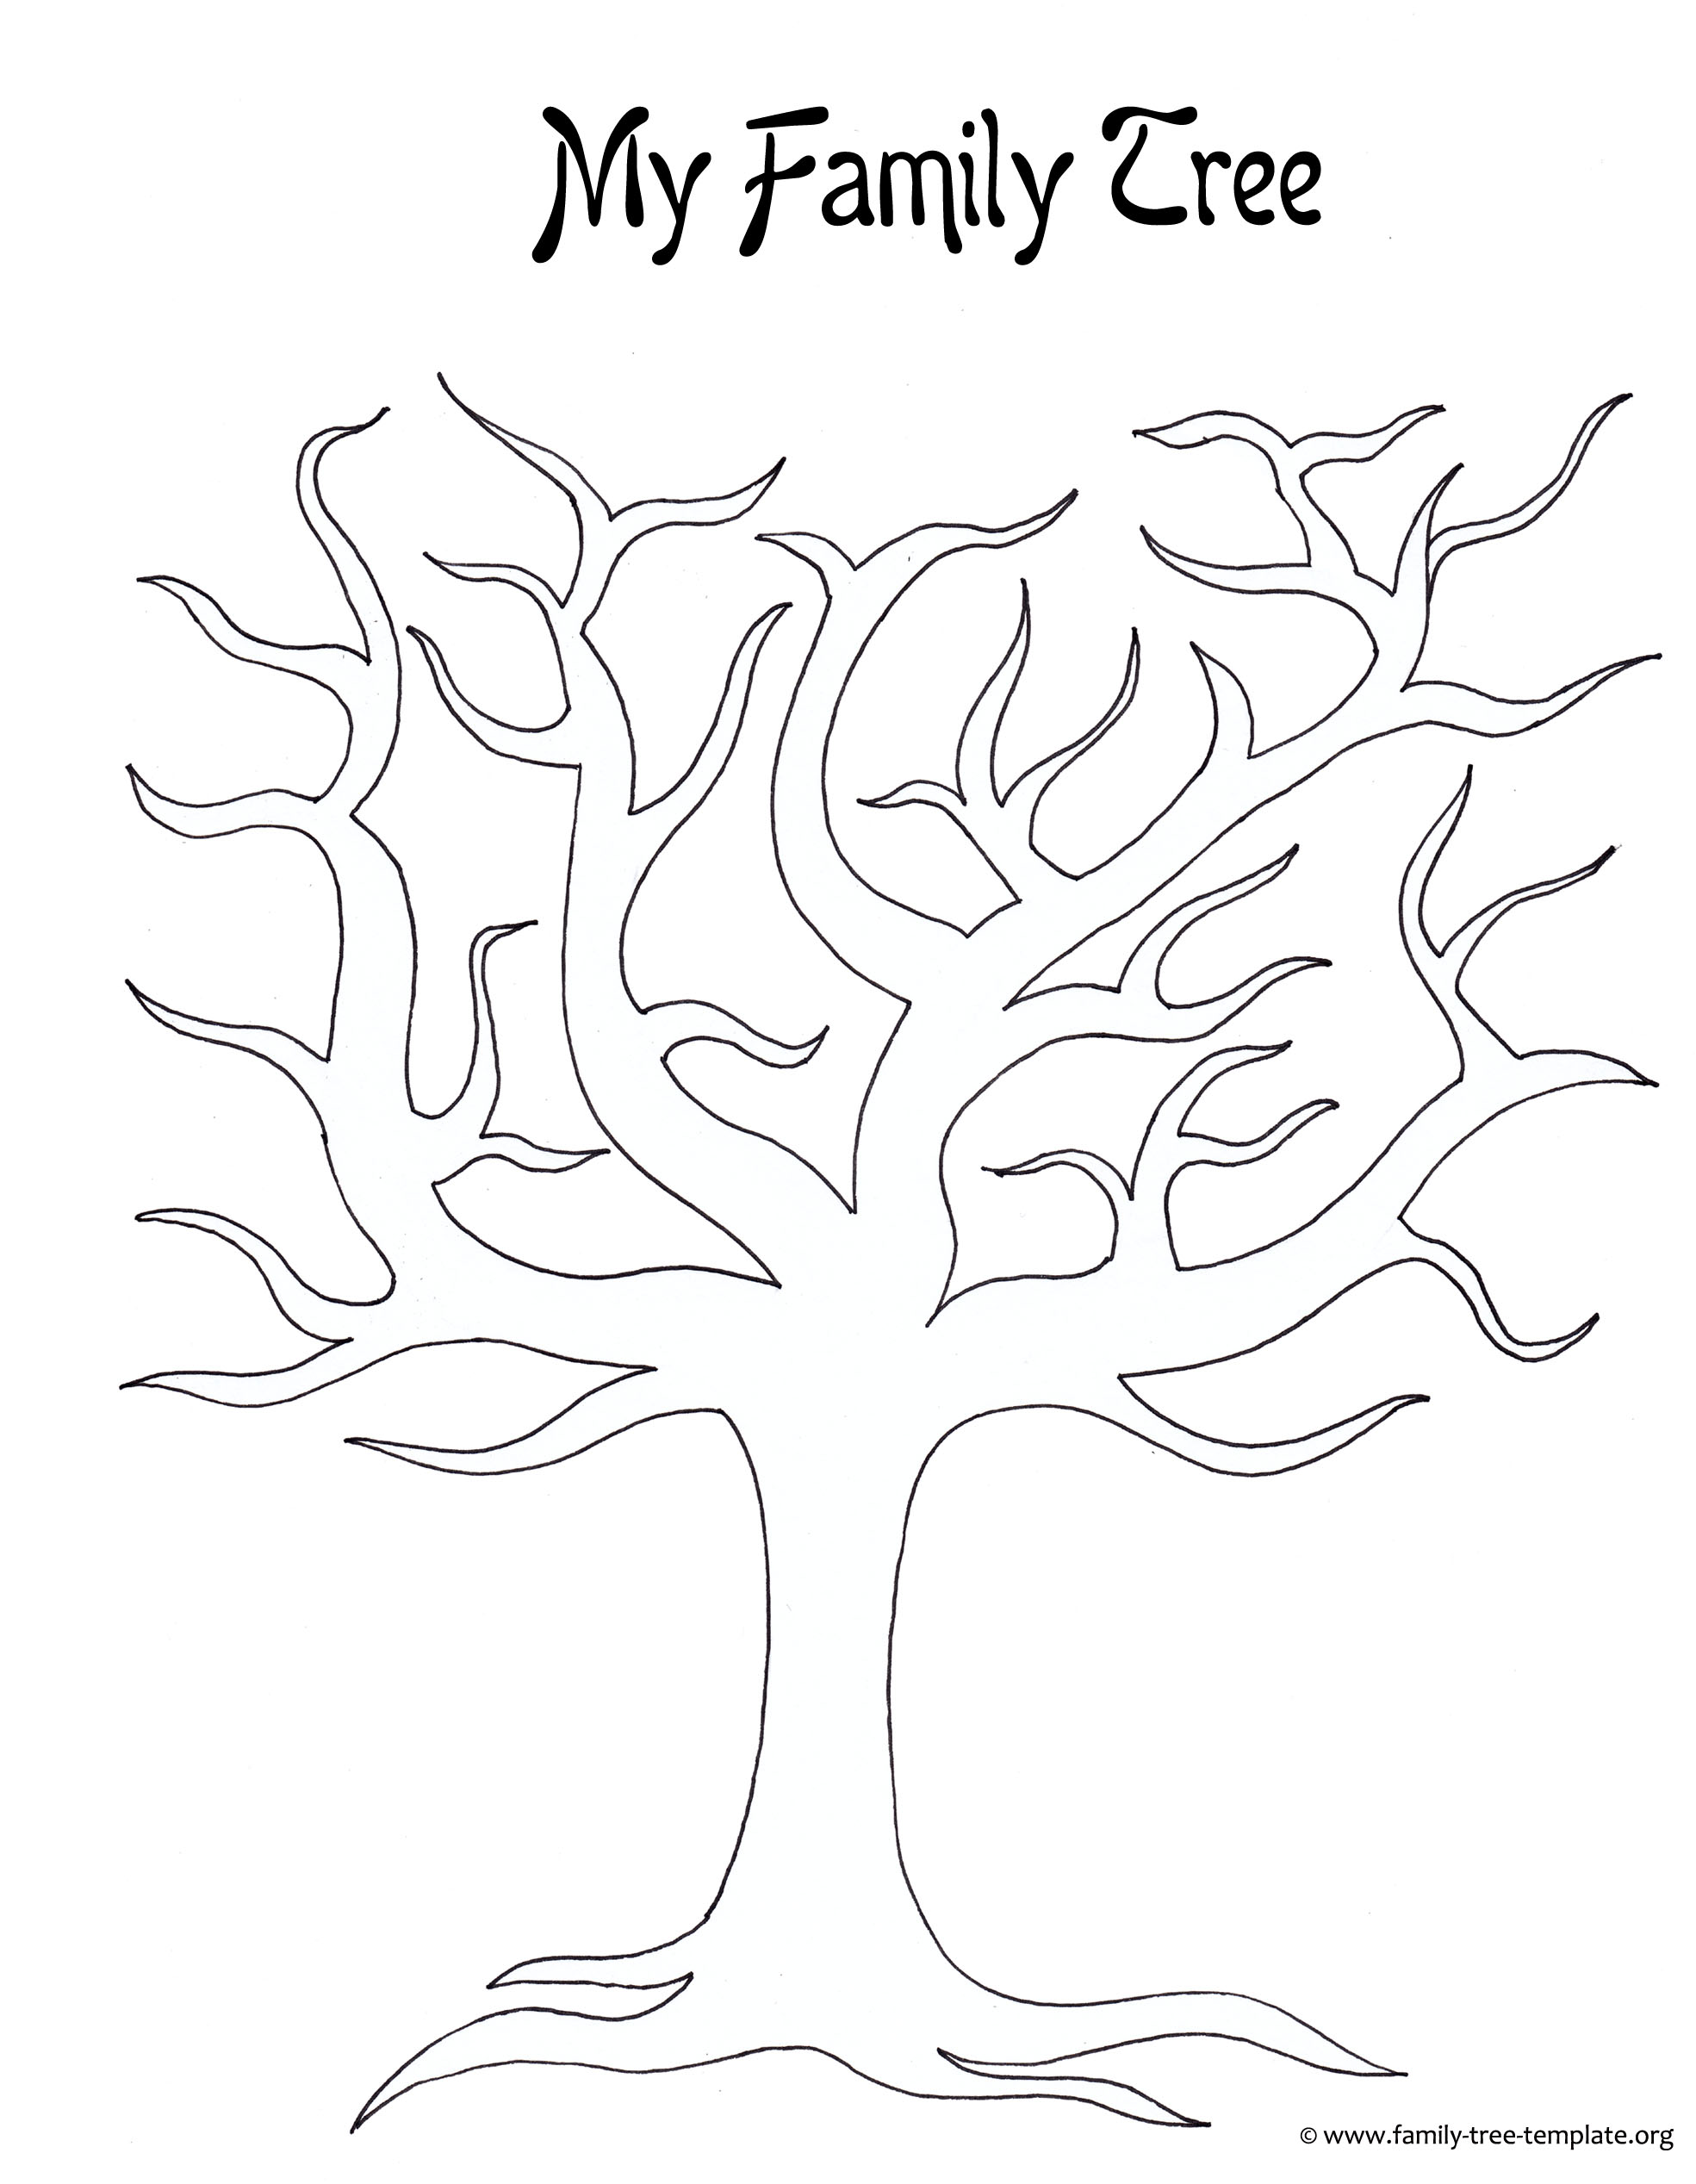 Family tree to print and for kids to color.